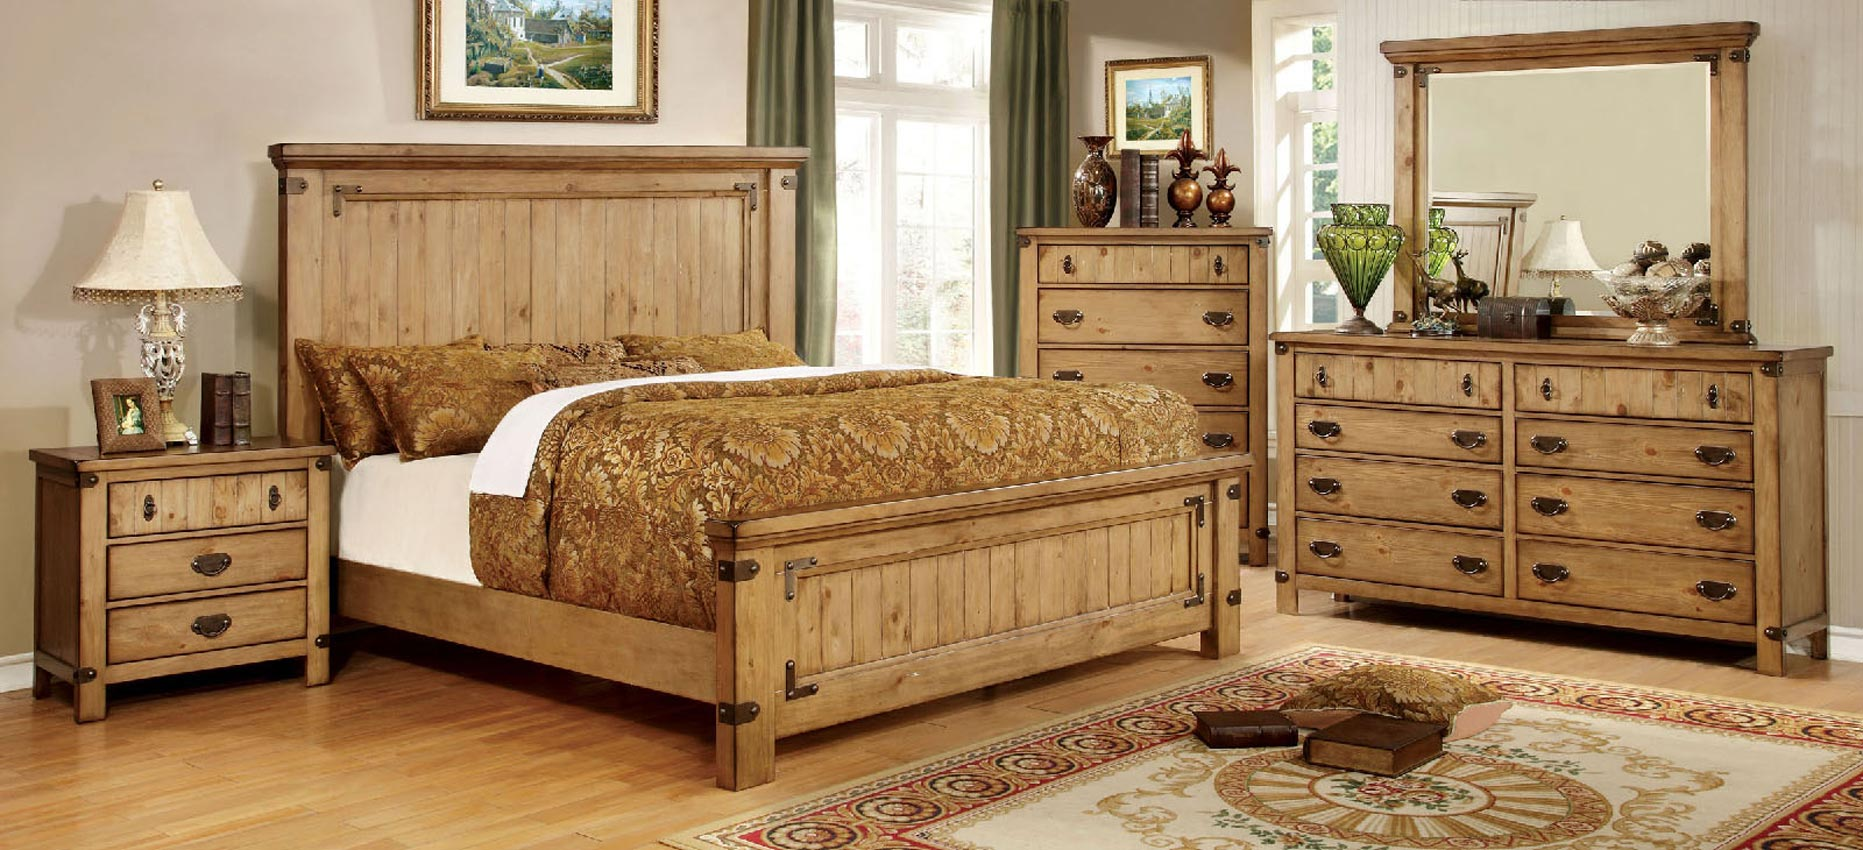 Old Fashion Queen Bed Frame